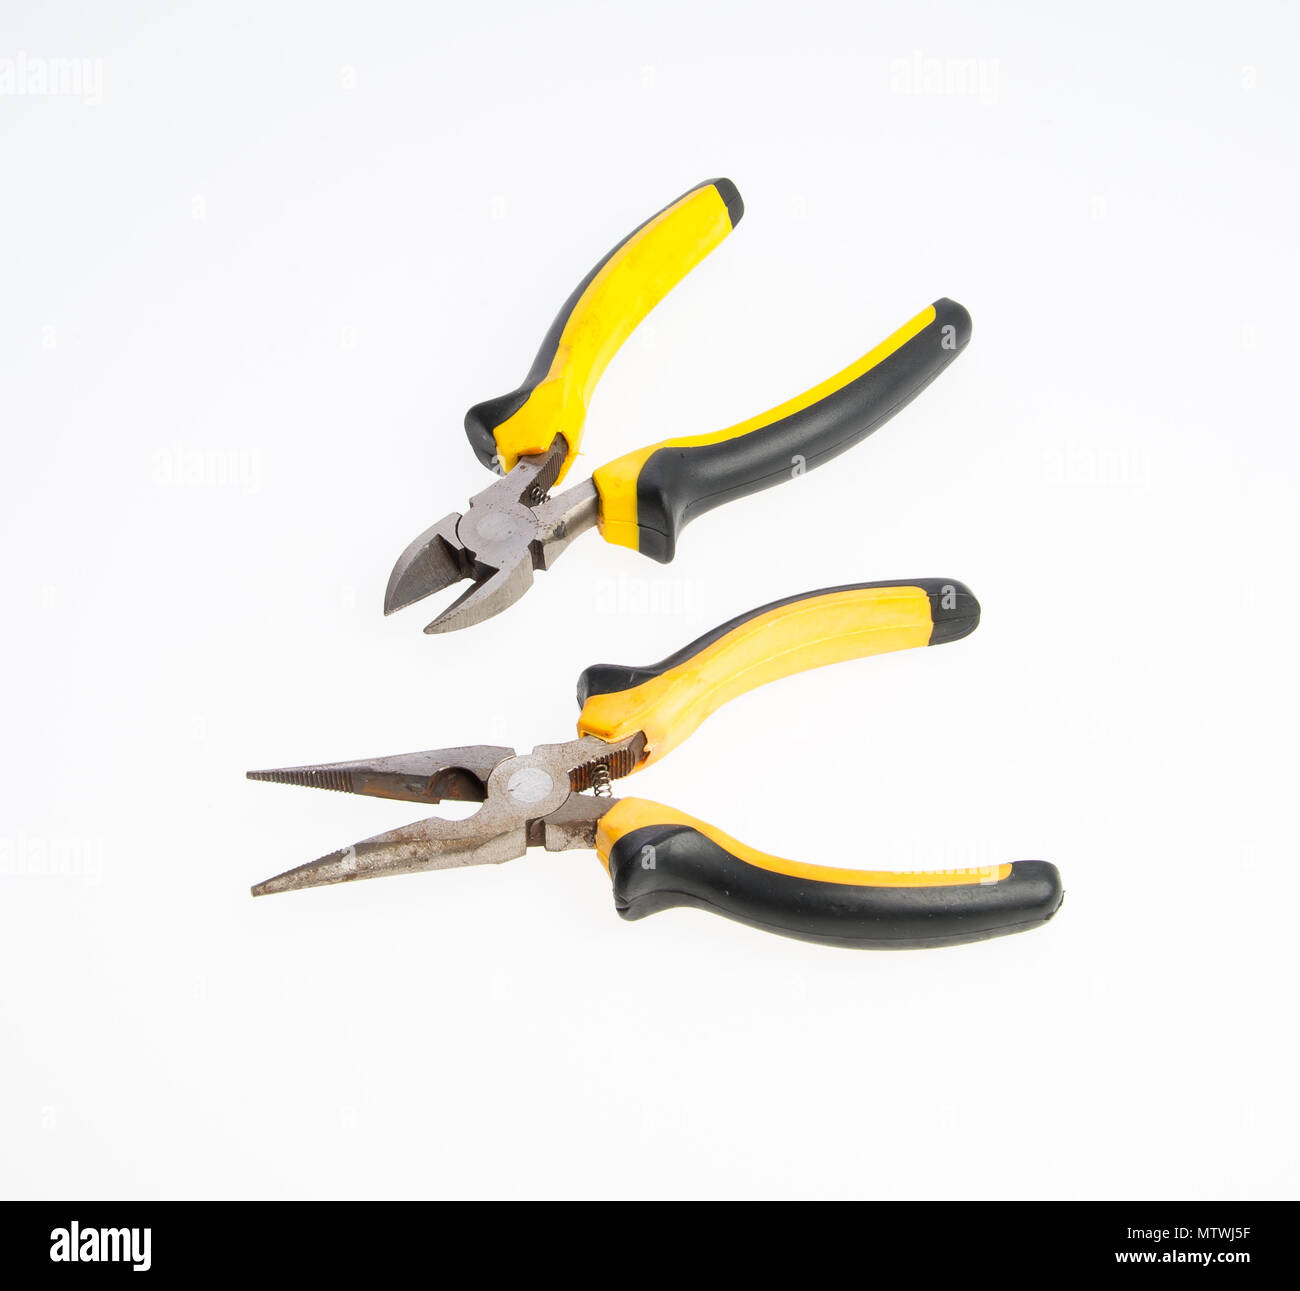 Pliers or The manual tool on a background - Stock Image